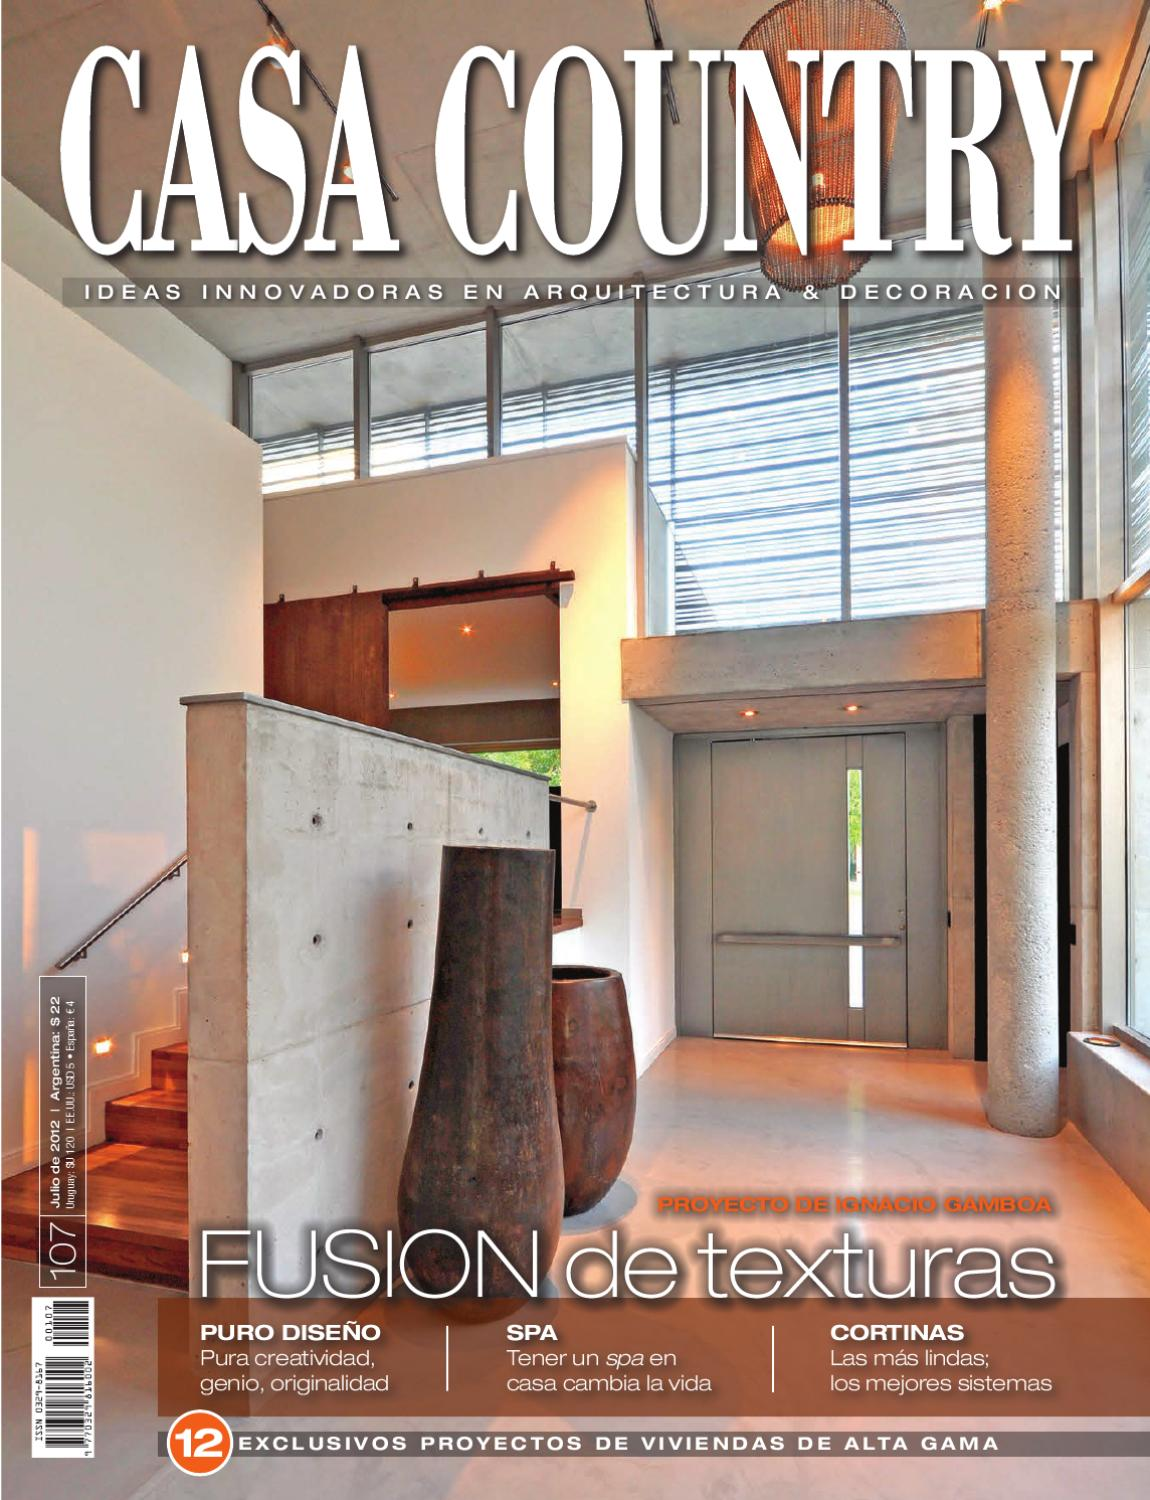 Casa country 107 julio 2012 by martin jaunarena issuu for Tipos de cielorrasos para casas